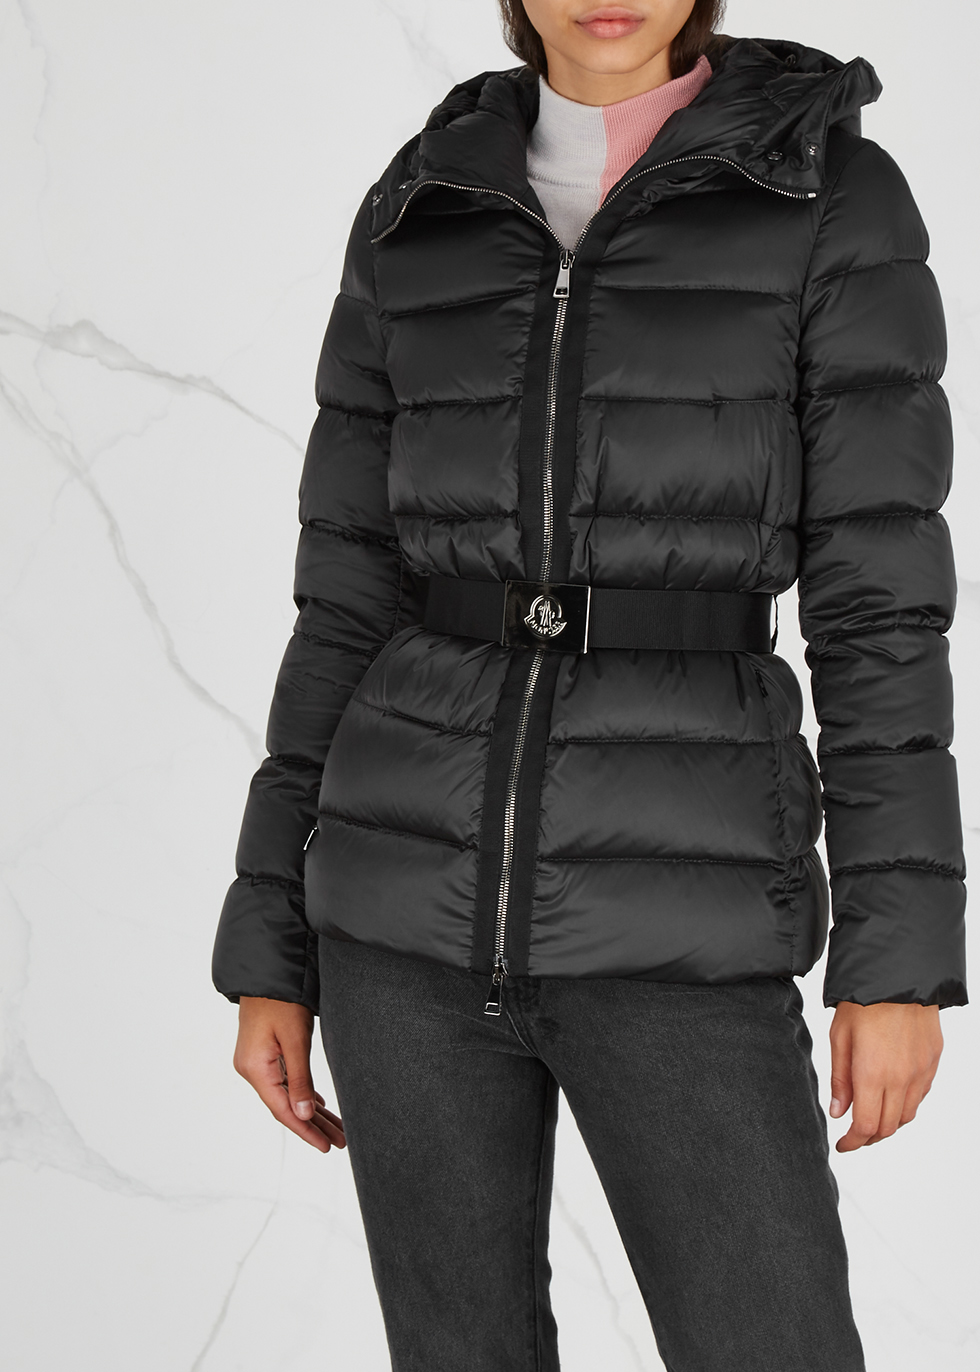 Tatie black fur-trimmed jacket - Moncler